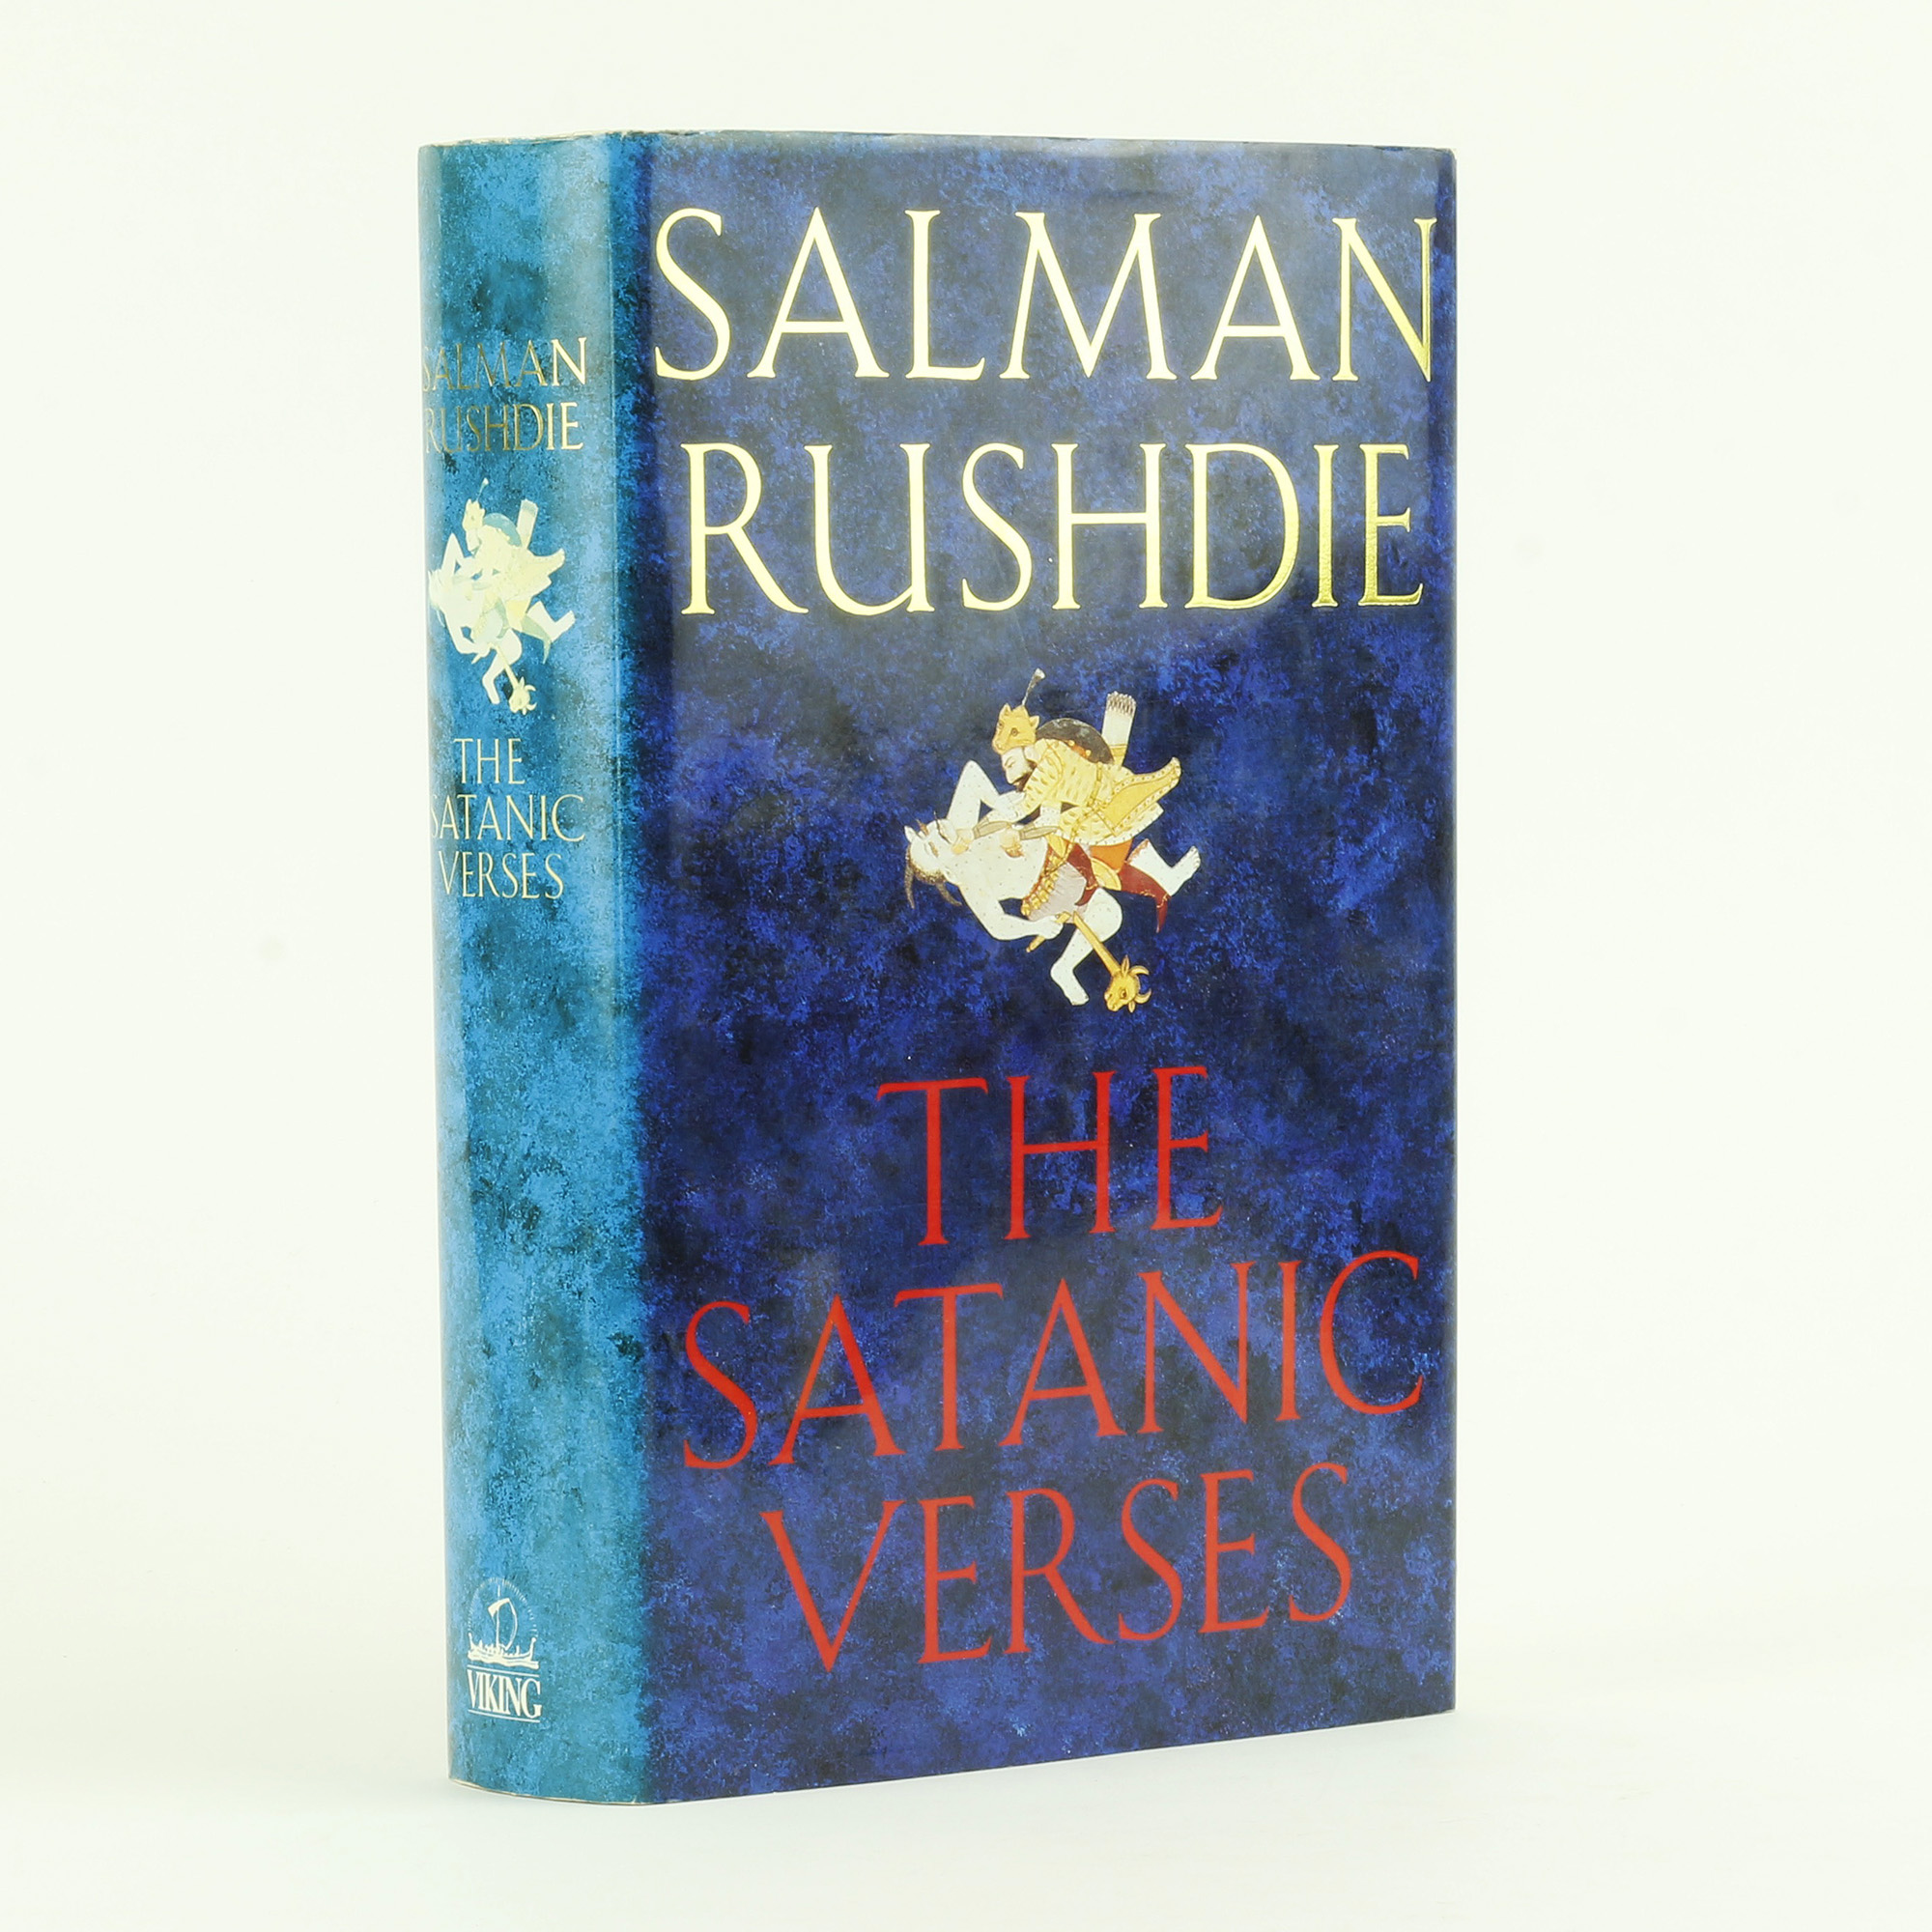 salman rushdie and the satanic verses Acclaimed writer salman rushdie, who enduring deaths threats for his novel the satanic verses, is coming to the mississippi book festival.